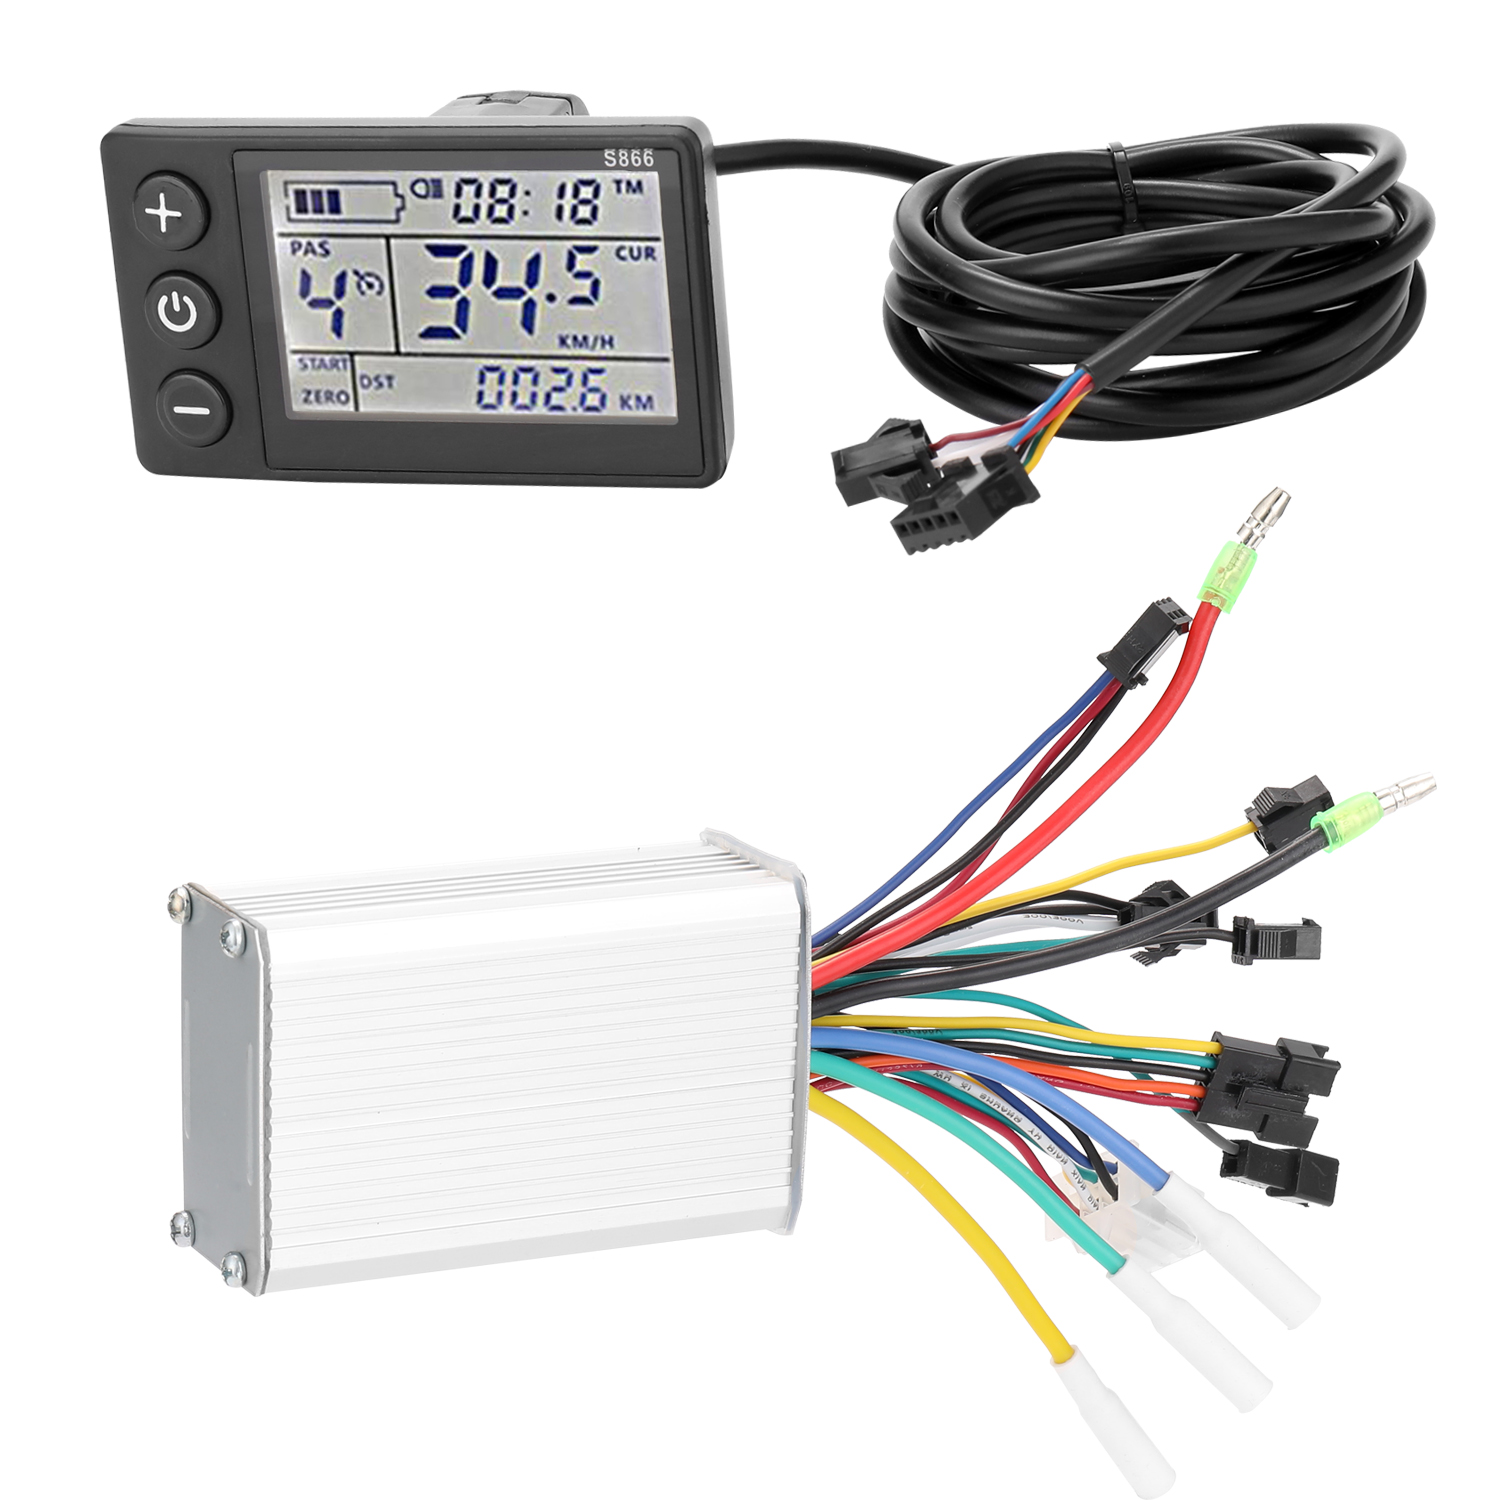 E-bike Controller with LCD Display Electric Bike Controller 24V-48V/36V-<font><b>60V</b></font> 350W Brushless Bicycles <font><b>Motor</b></font> Scooter Controller image